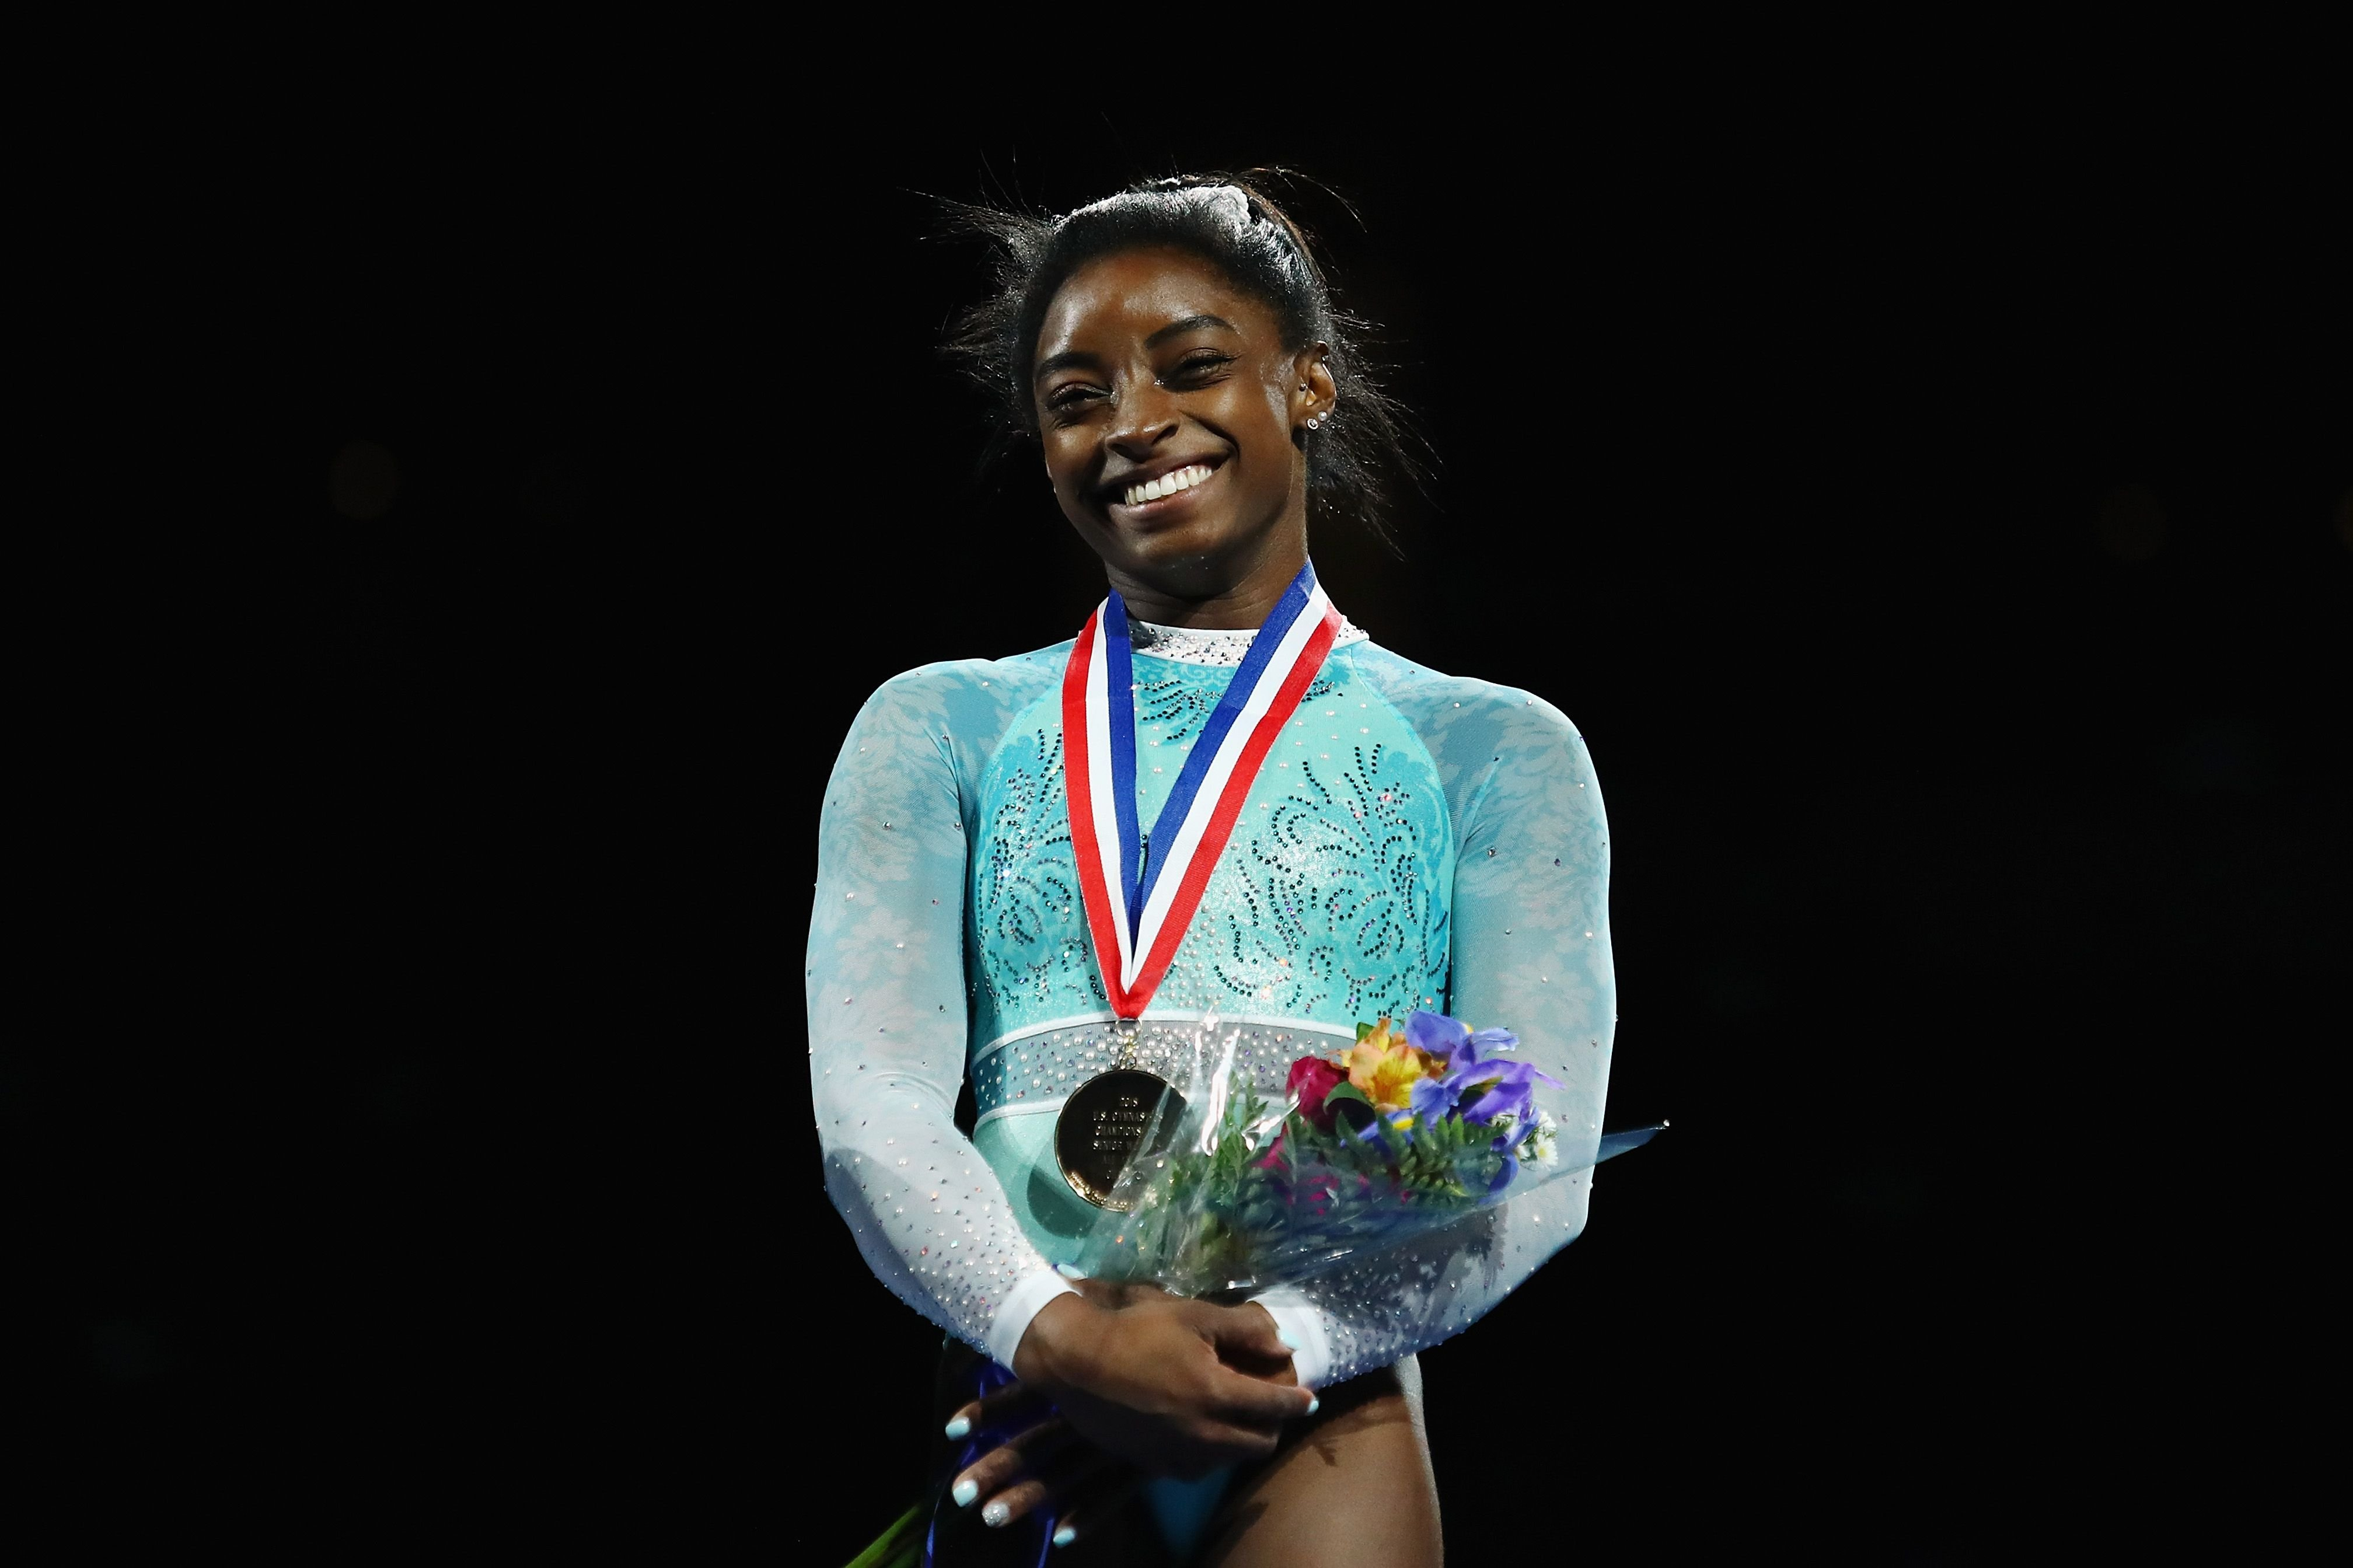 Simone Biles stands on the podium during day four of the U.S. Gymnastics Championships 2018 at TD Garden on August 19, 2018 in Boston, Massachusetts. | Photo: Getty Images.